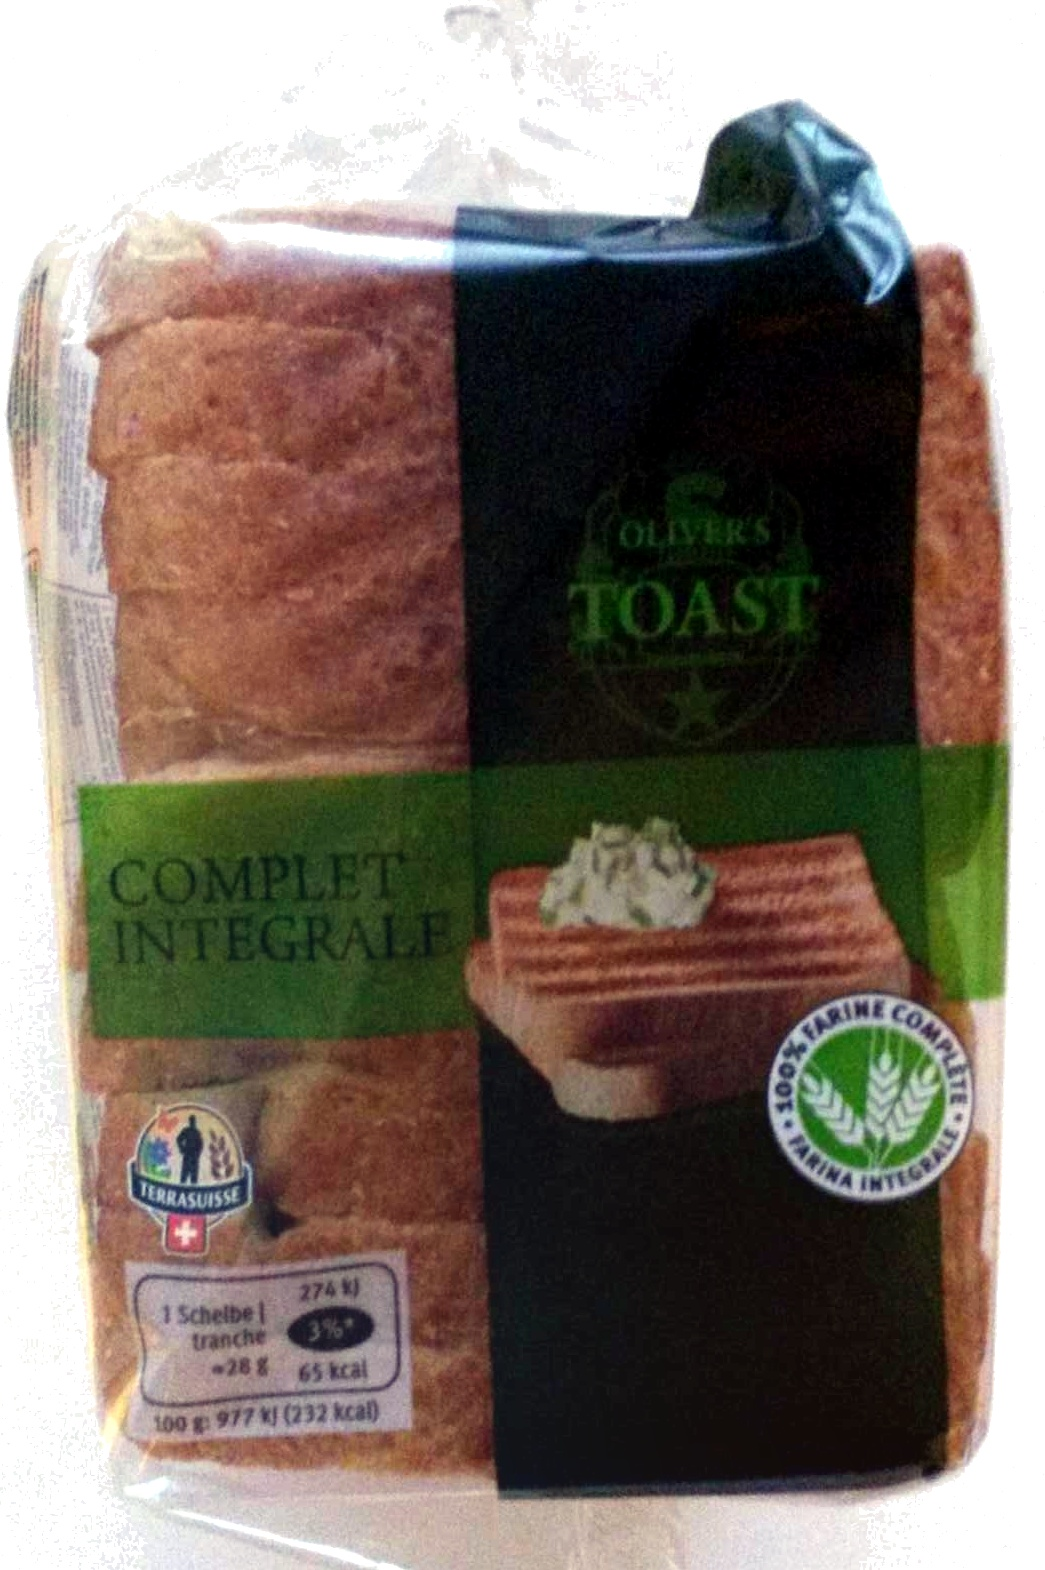 Toast complet intégrale - Prodotto - fr